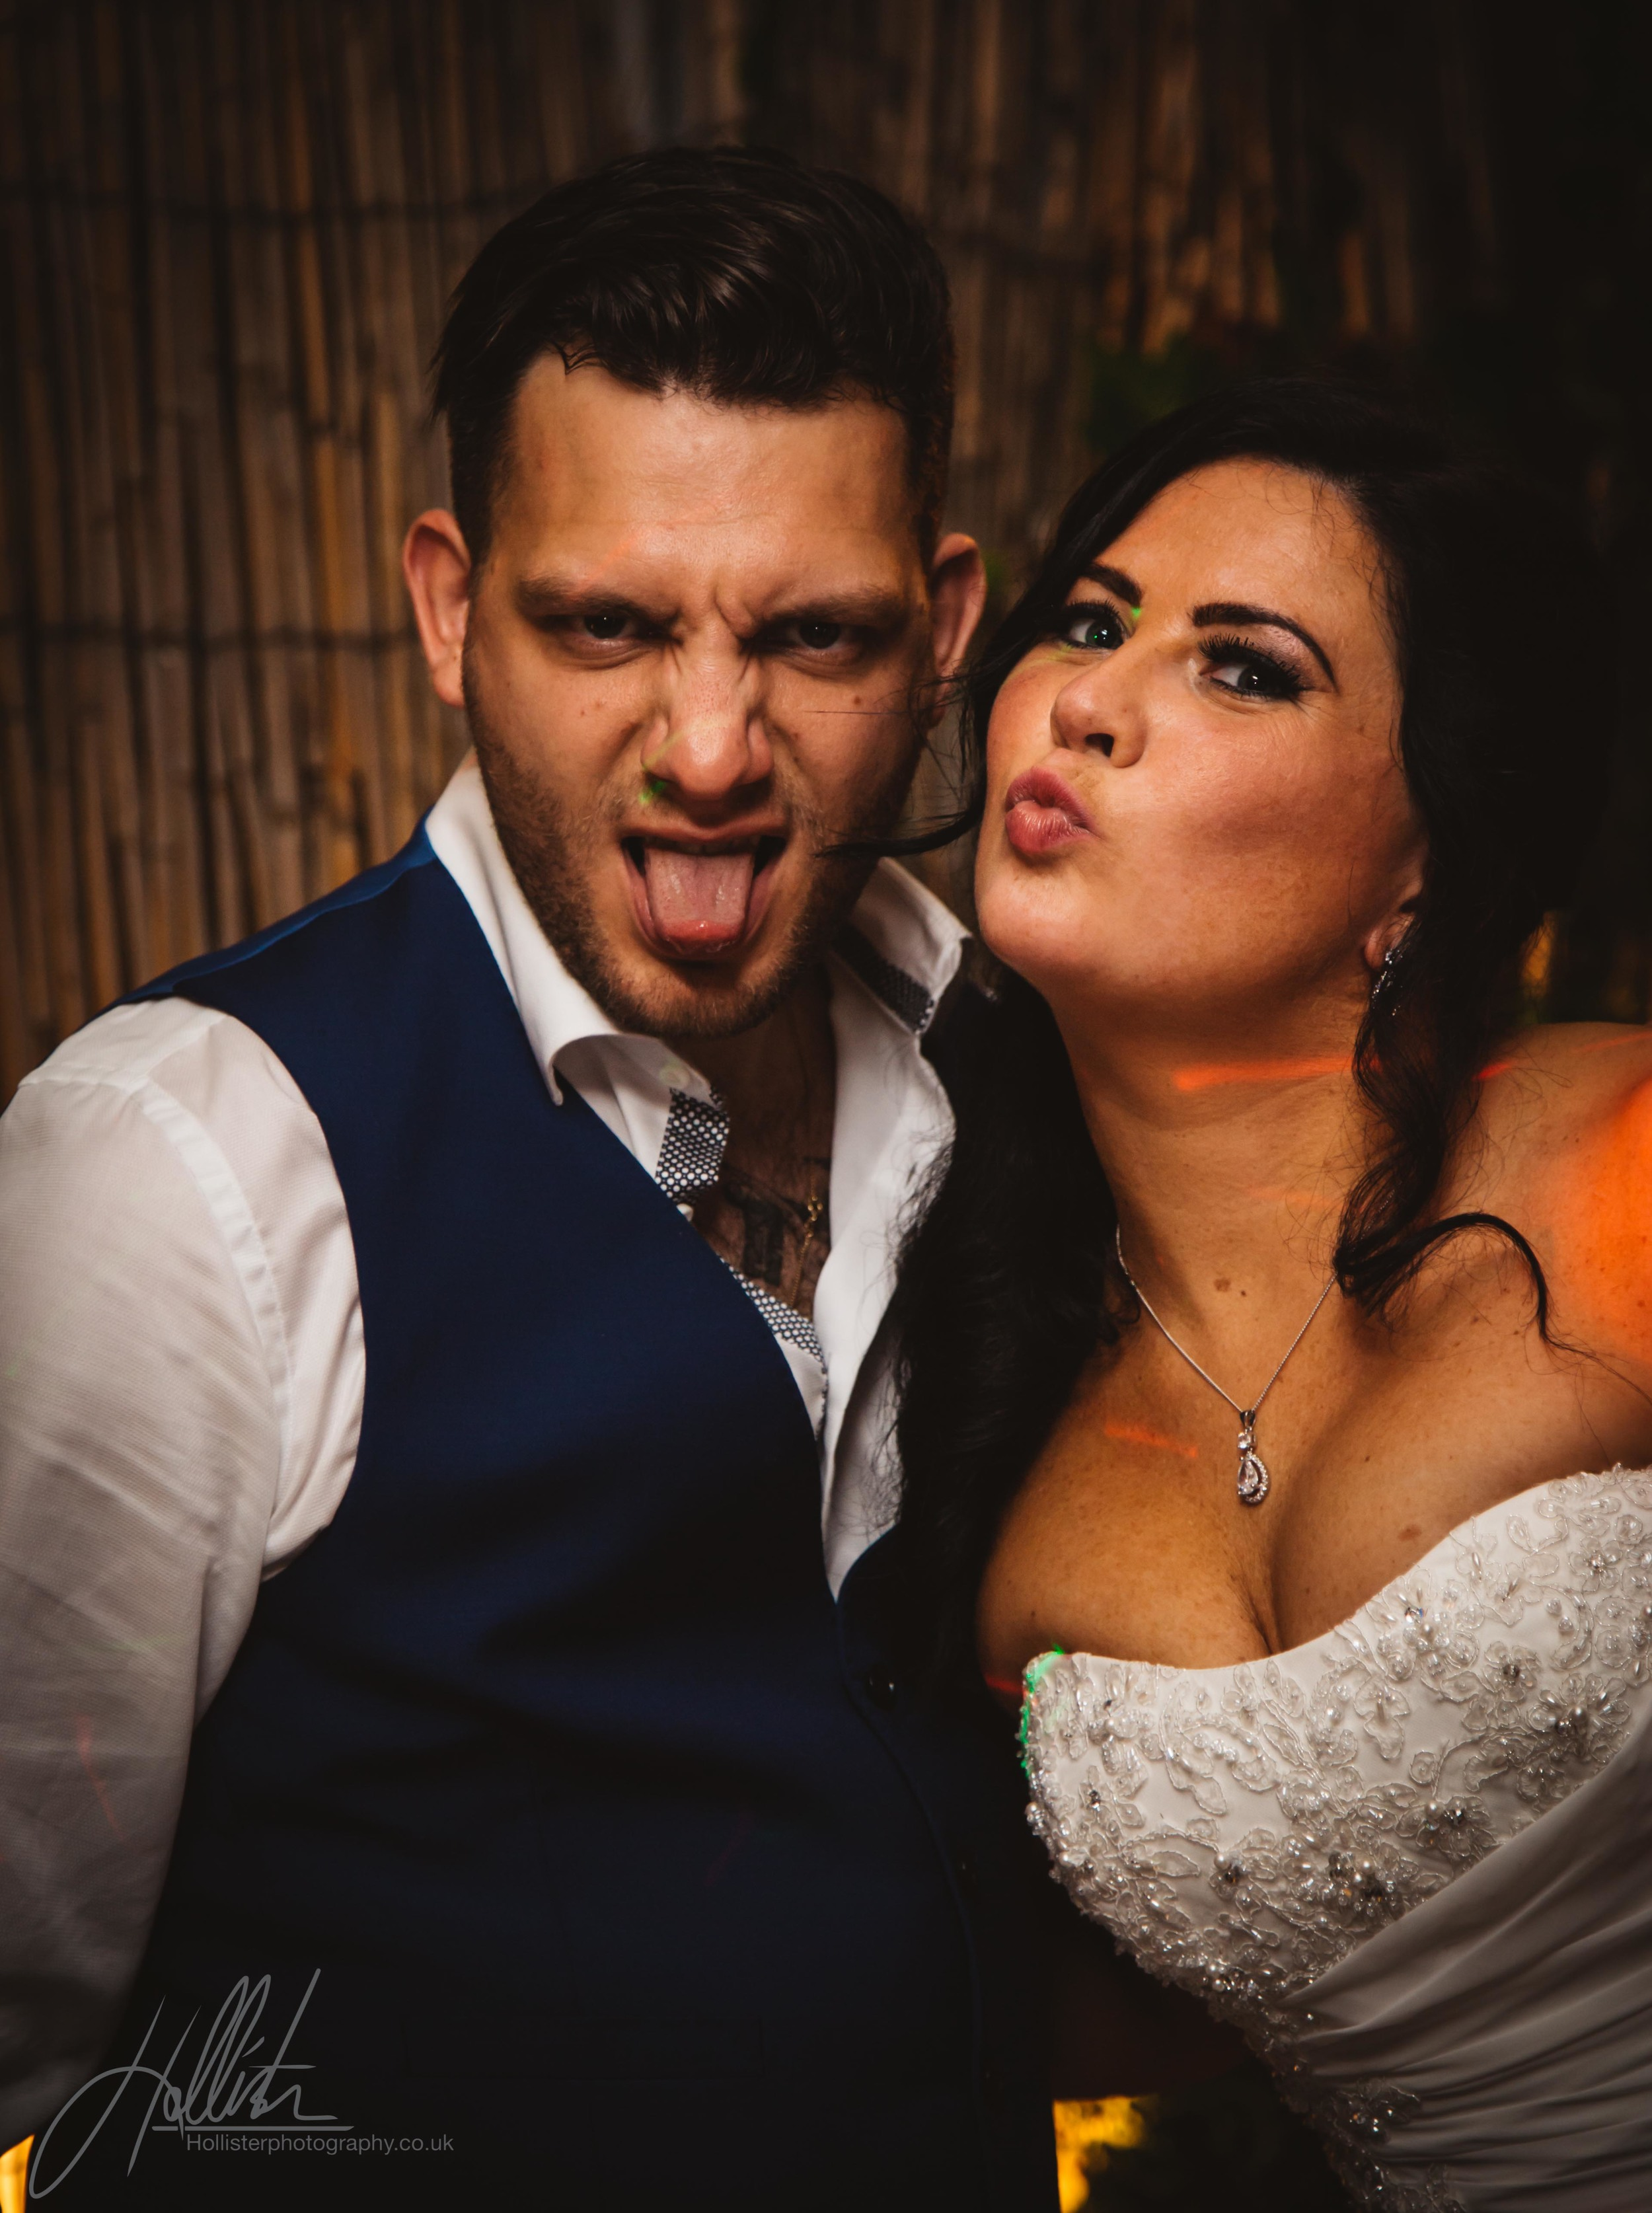 Stu and Firons Gibraltan Wedding june 6th 2015  WATERMARKED-4.jpg